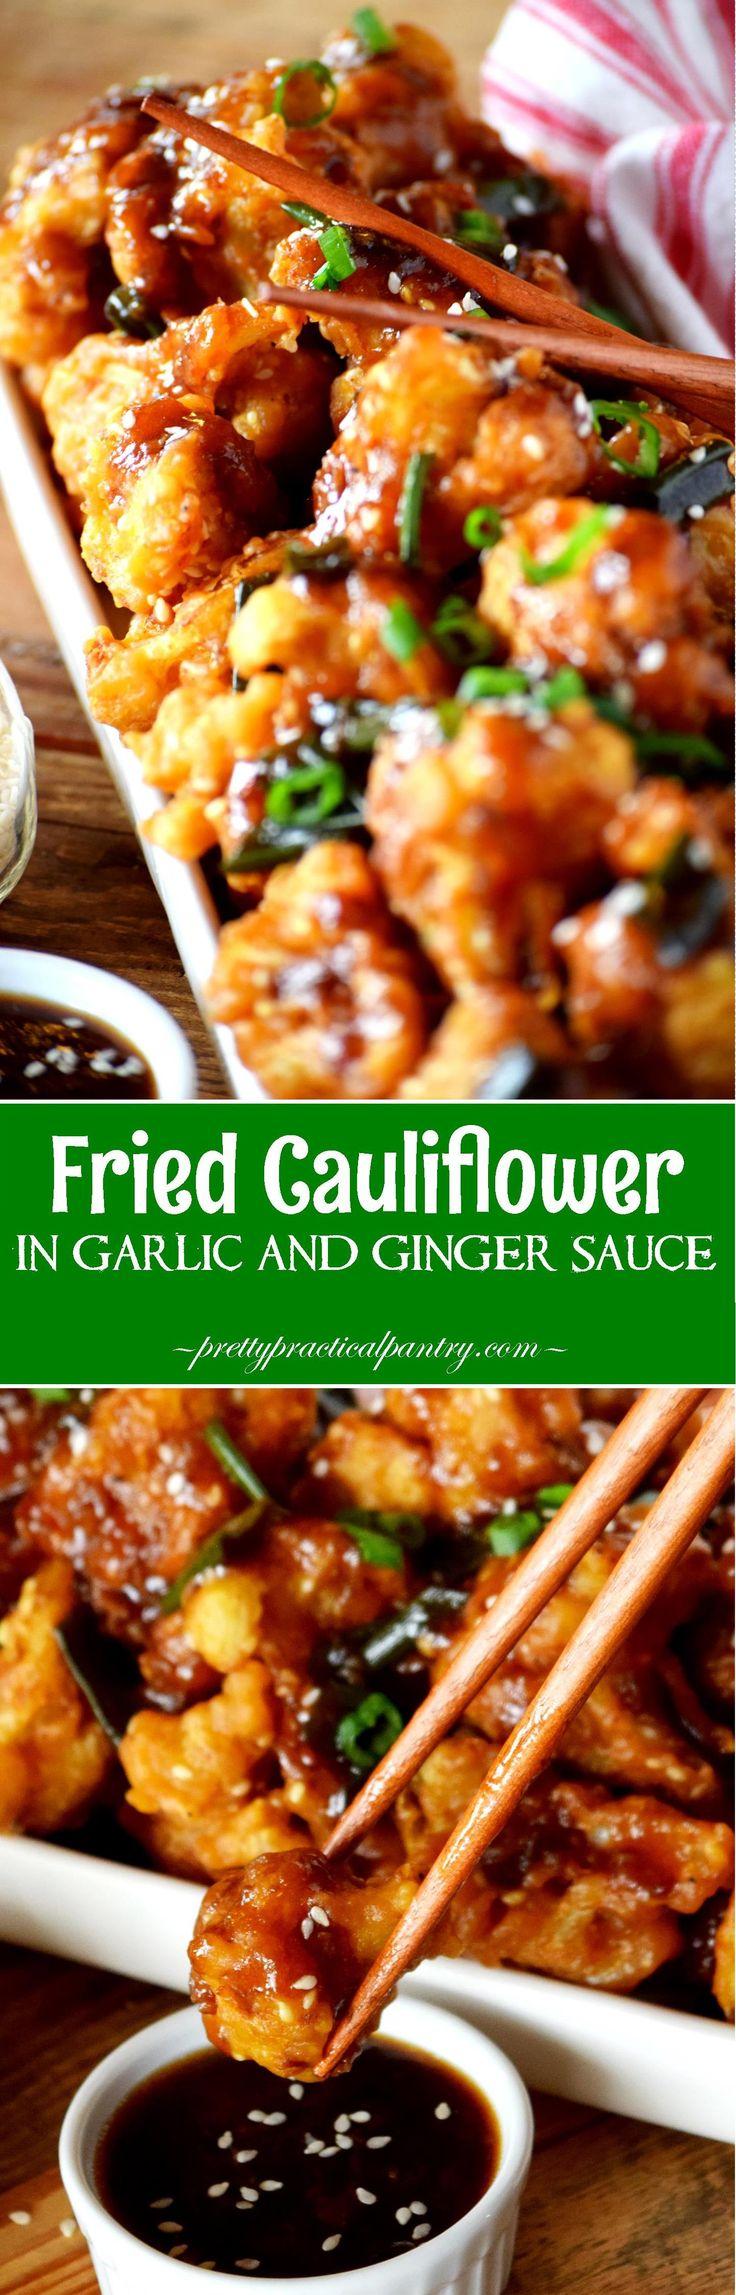 Fried Cauliflower in Garlic and Ginger Sauce